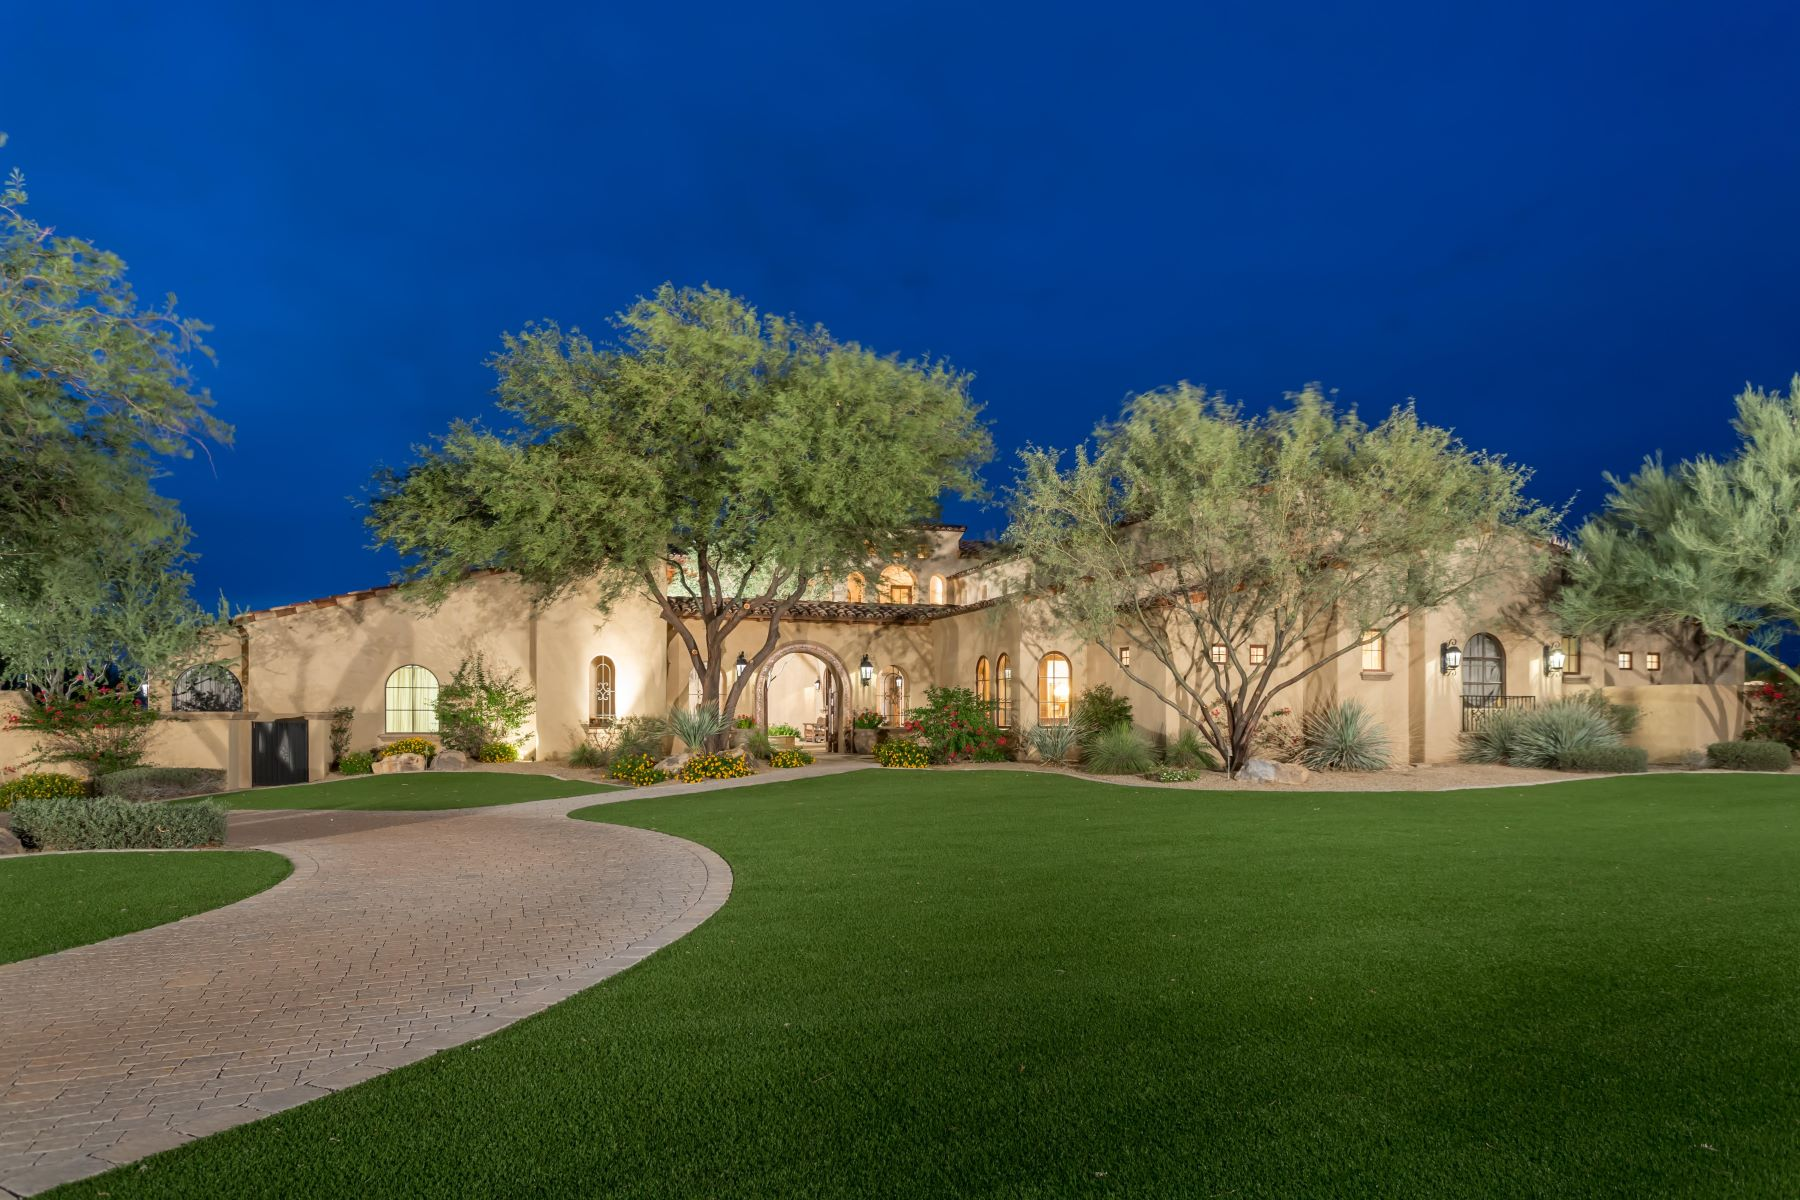 Single Family Home for Sale at Exclusive Estate Living Surrounded by sprawling mountains 24546 N 91st St Scottsdale, Arizona, 85255 United States